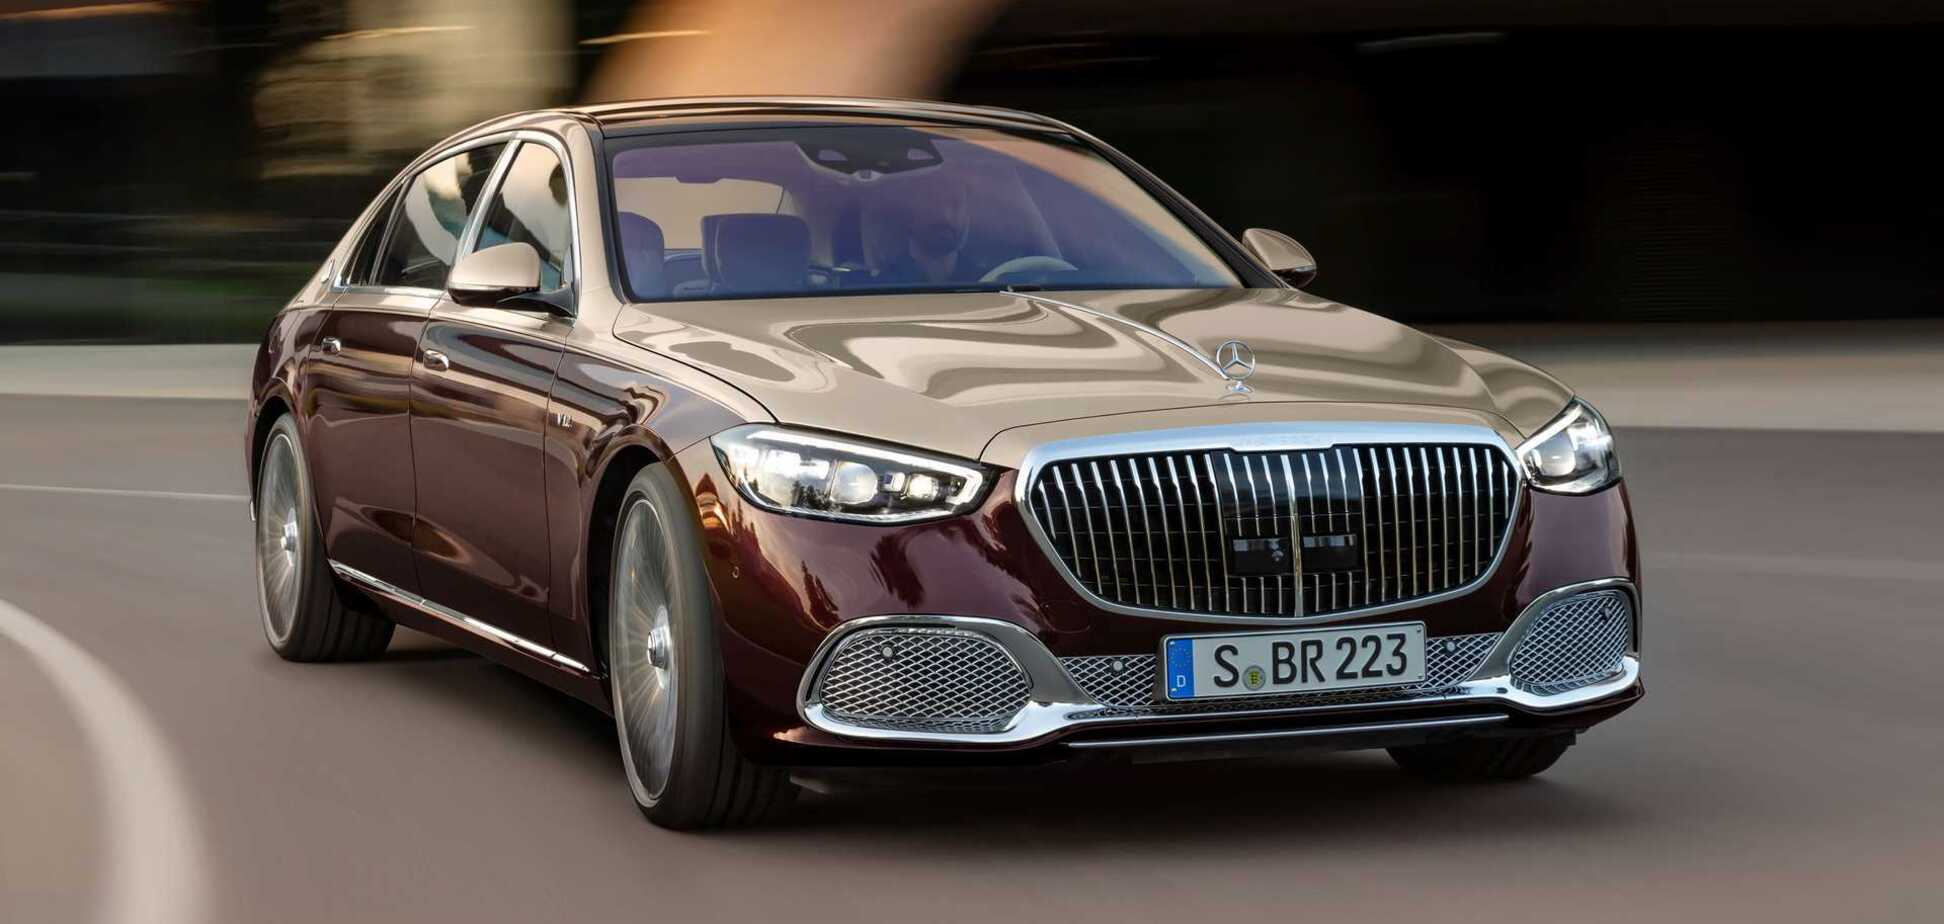 Mercedes-Maybach S680 S-class